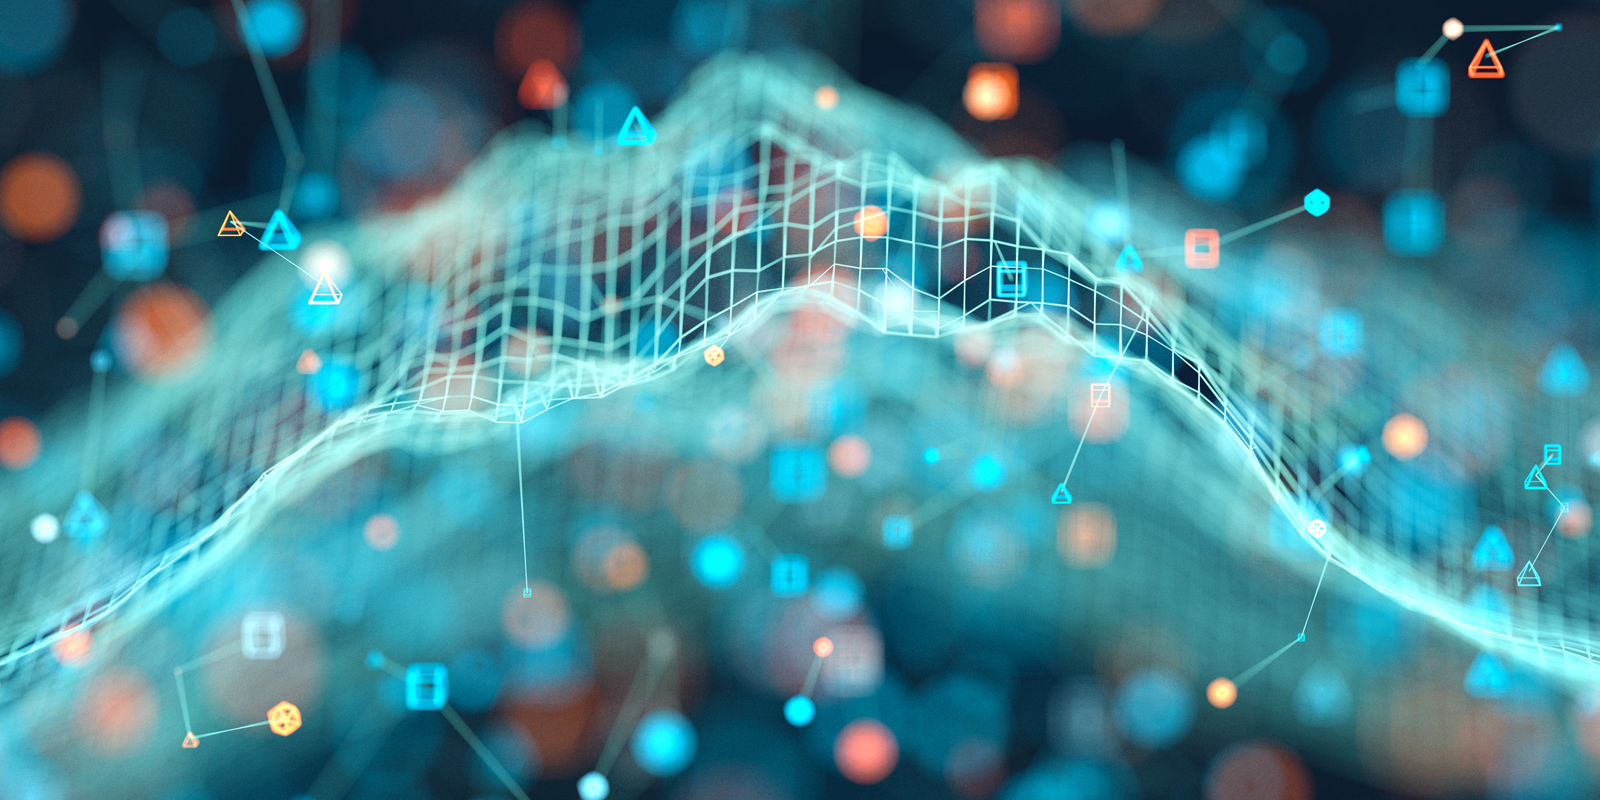 Big data is key to identifying strategic opportunities for health care in Northern Ontario